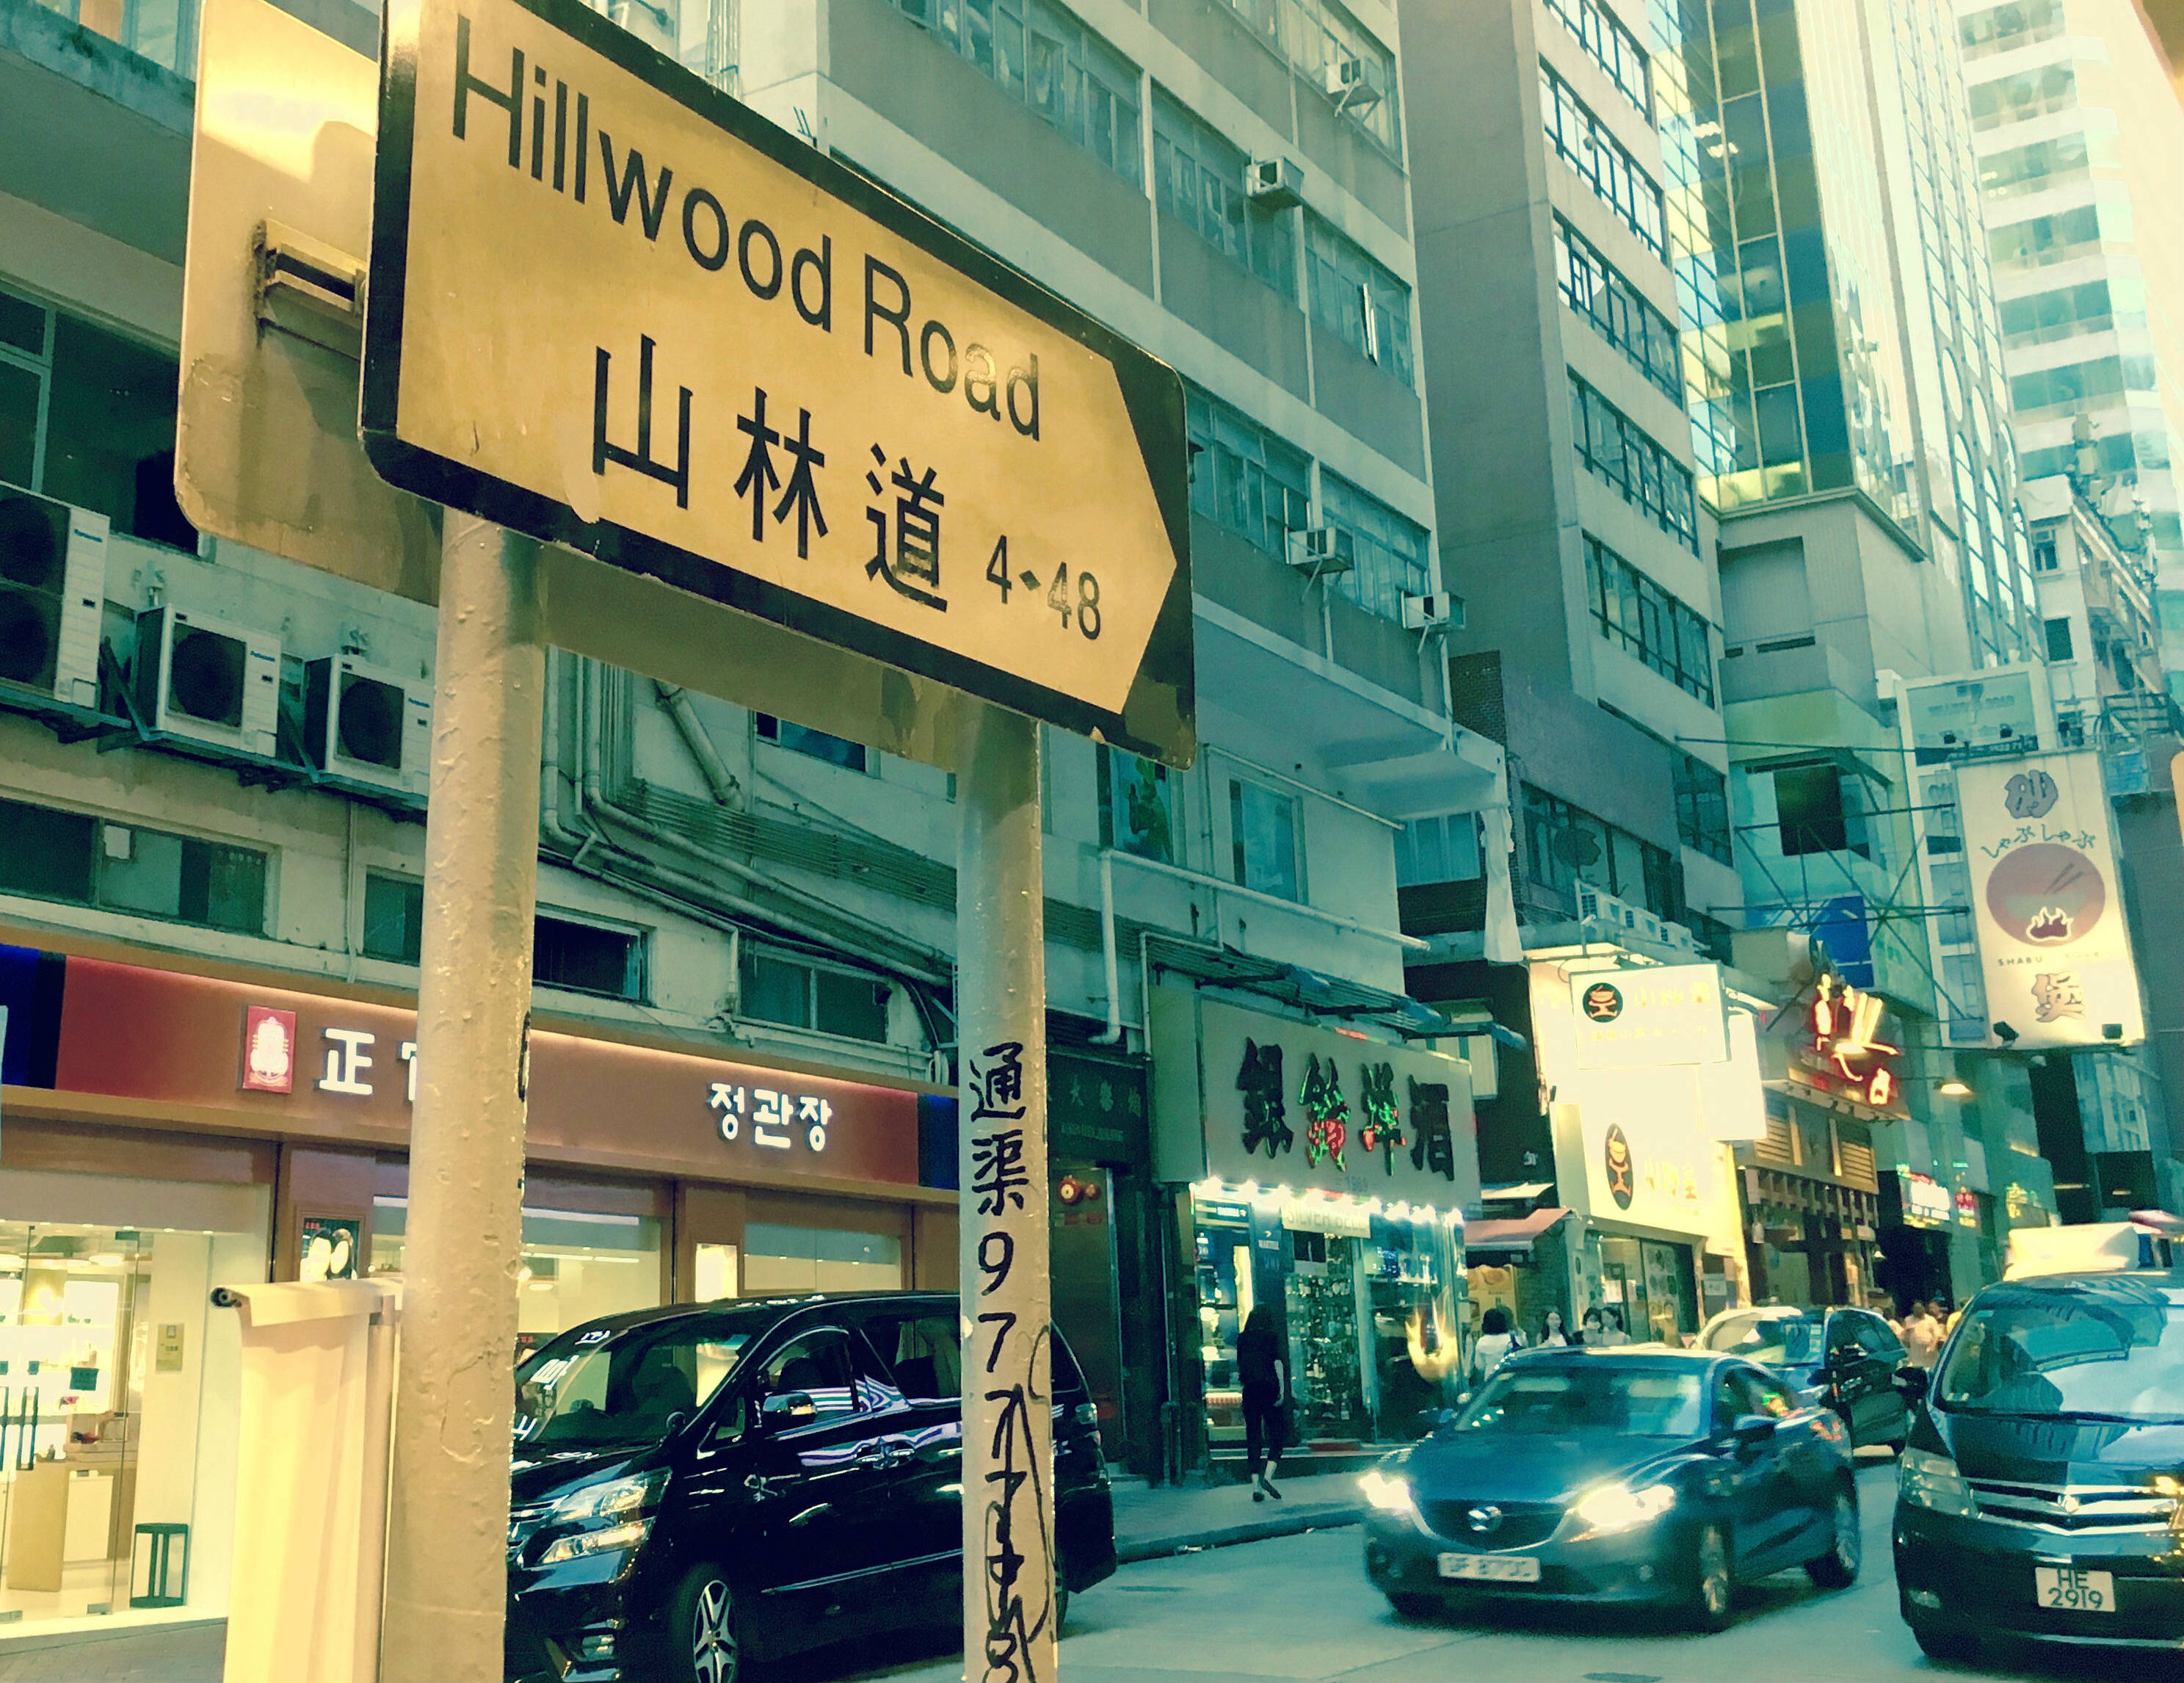 Upstairs F&B shop for Lease on Hillwood Road [Tsim Sha Tsui] - Lacrucci